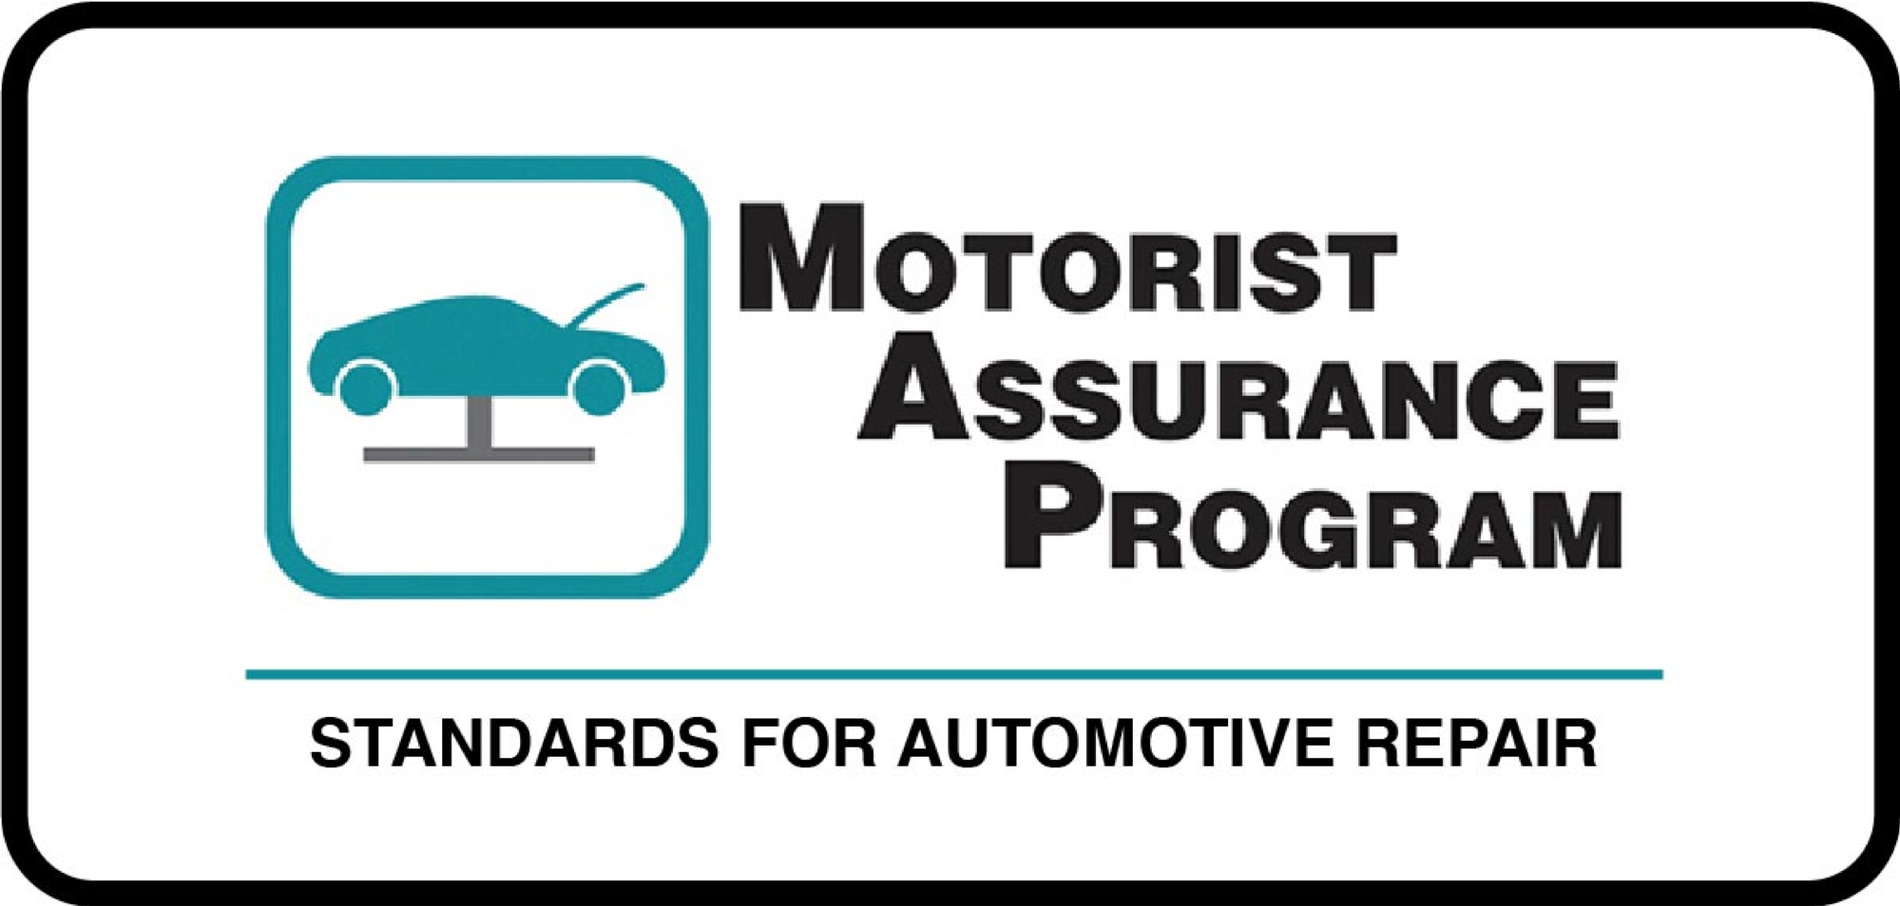 Motorist Assurance Program (MAP)